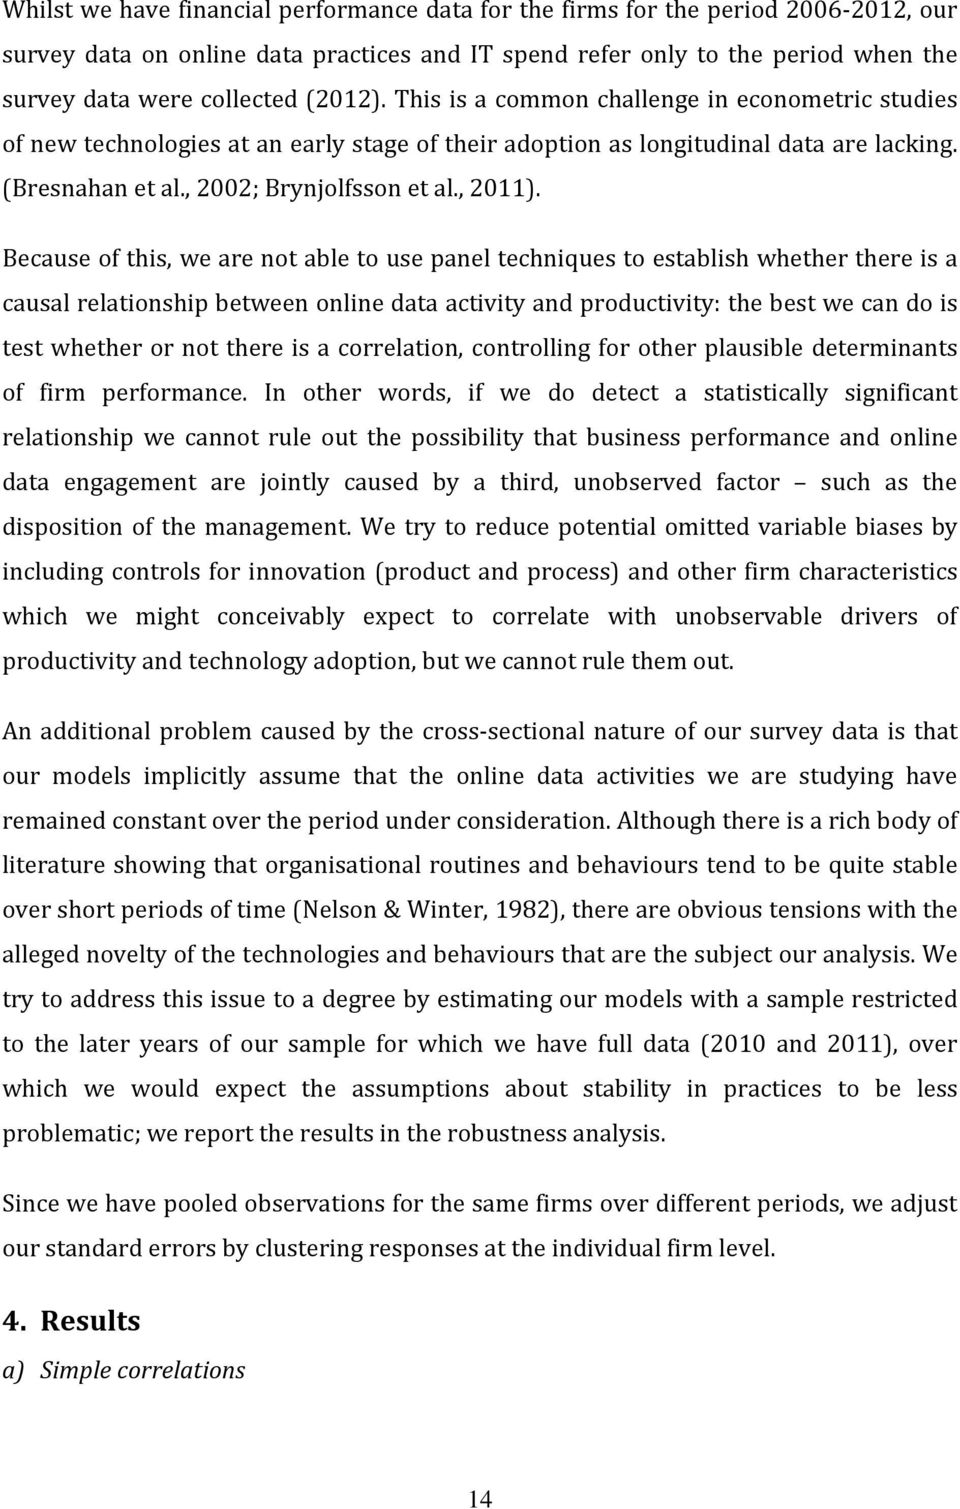 Because of this, we are not able to use panel techniques to establish whether there is a causal relationship between online data activity and productivity: the best we can do is test whether or not